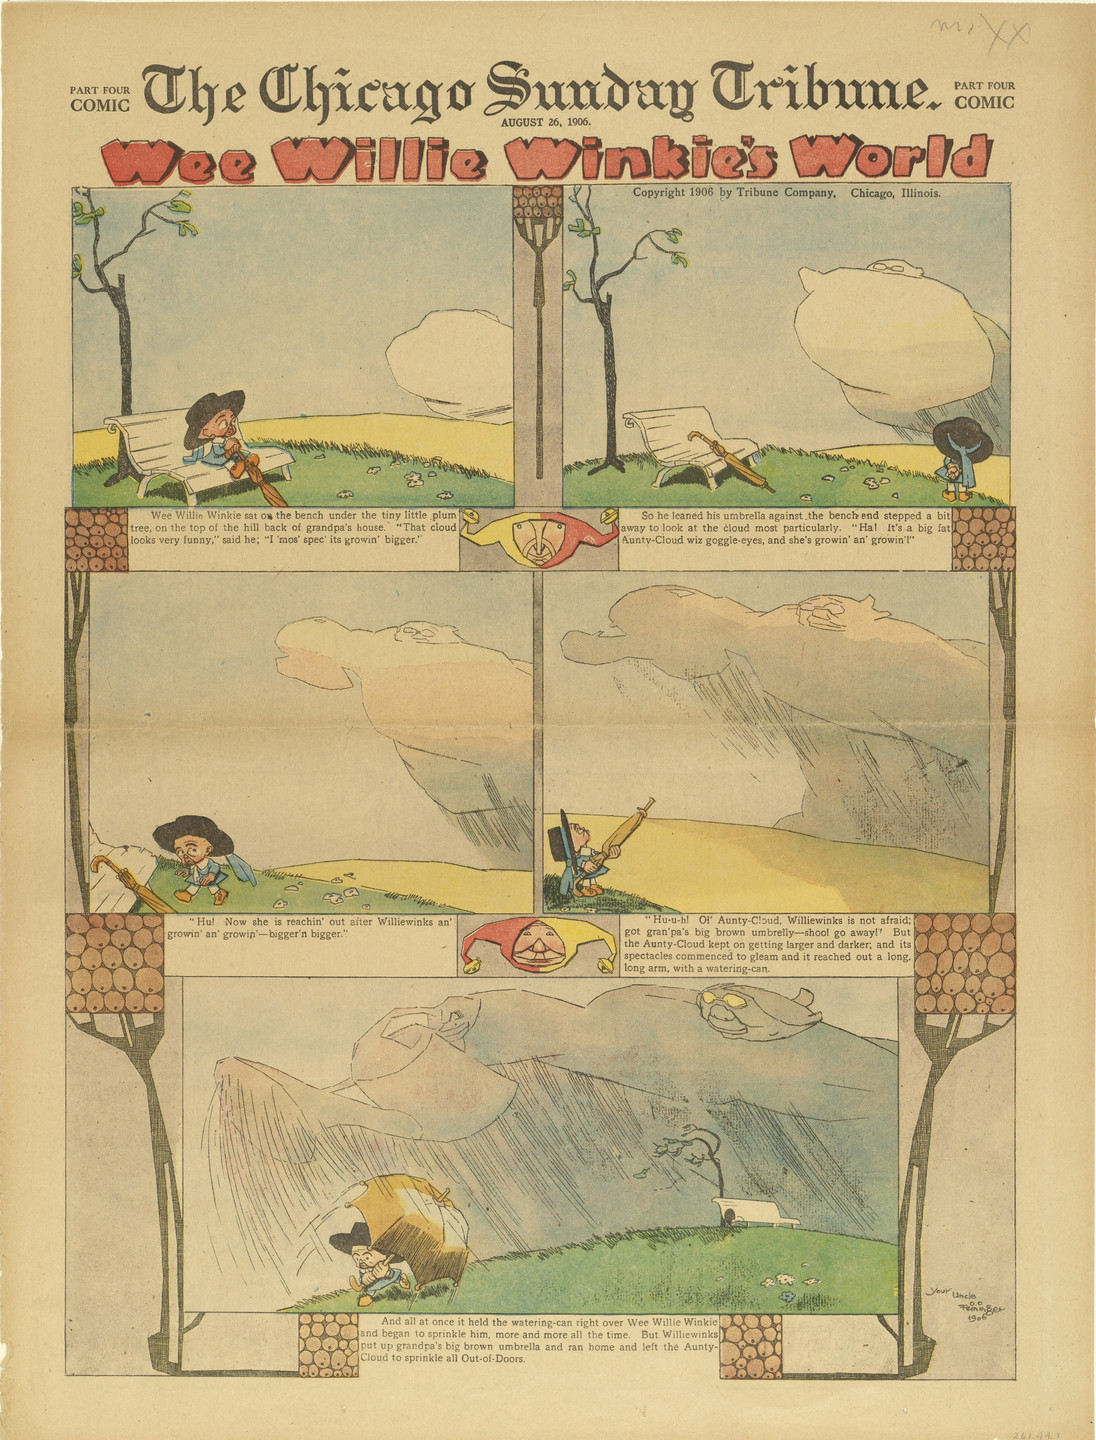 Lyonel Feininger. Wee Willie Winkie's World from The Chicago Sunday Tribune. August 26 - December 2, 1906